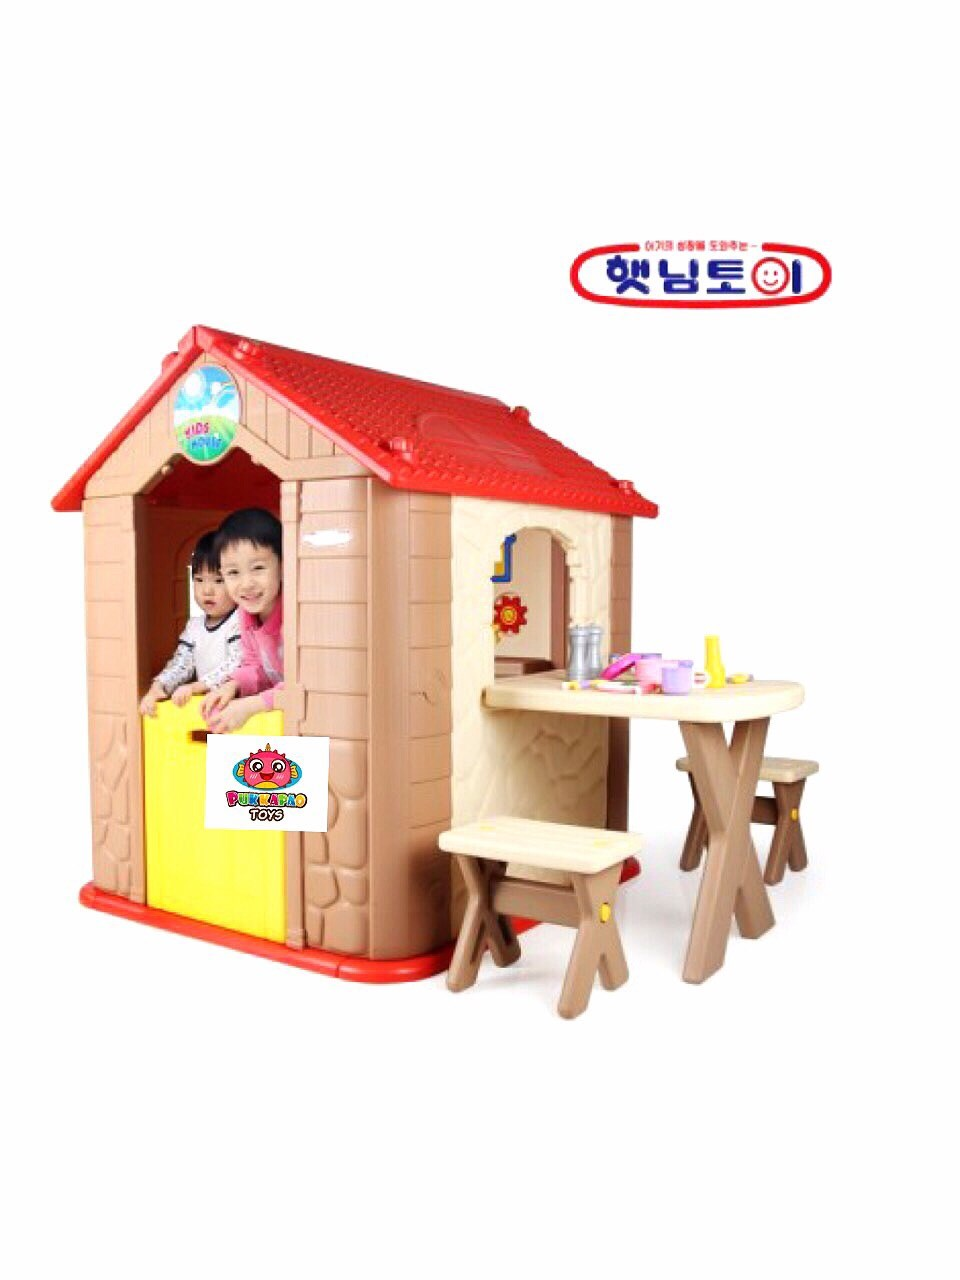 My first kid house